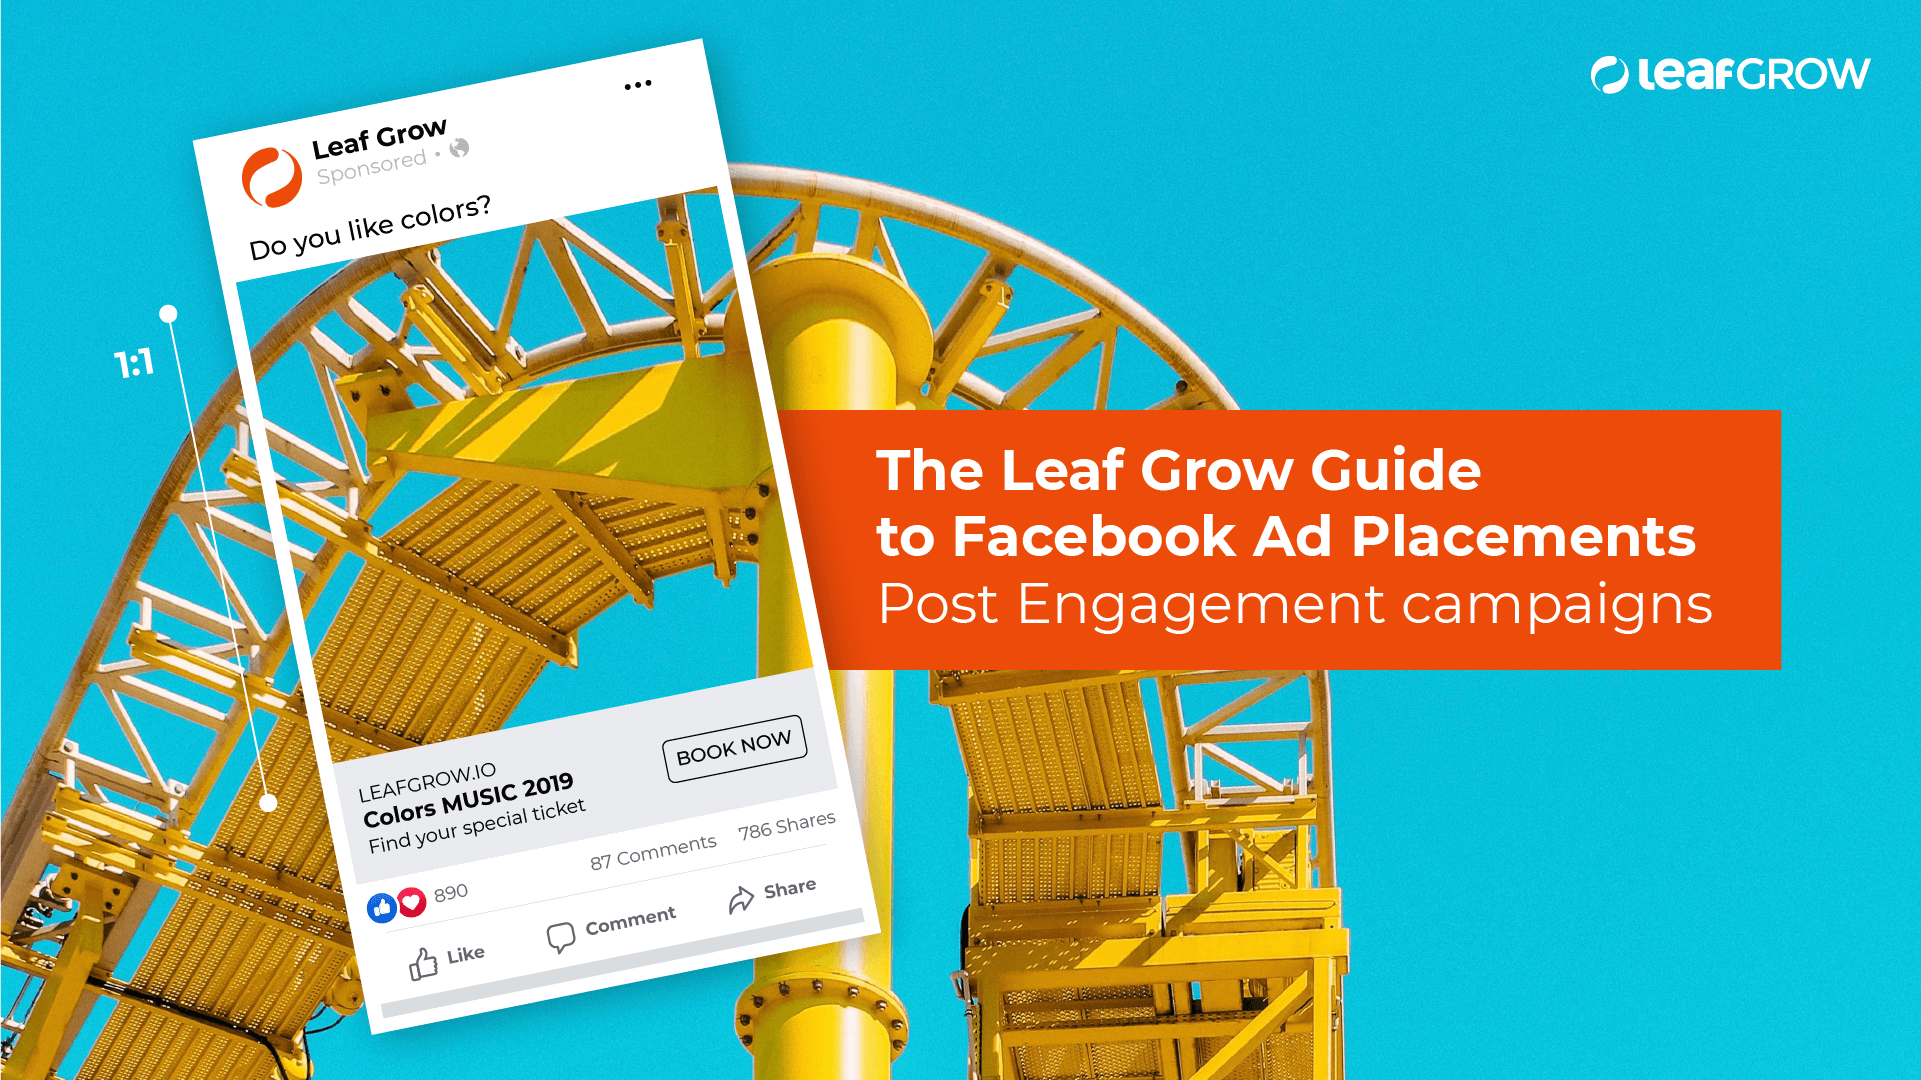 The Leaf Grow Guide to Facebook Ad Placements - Post Engagement campaigns-01.png